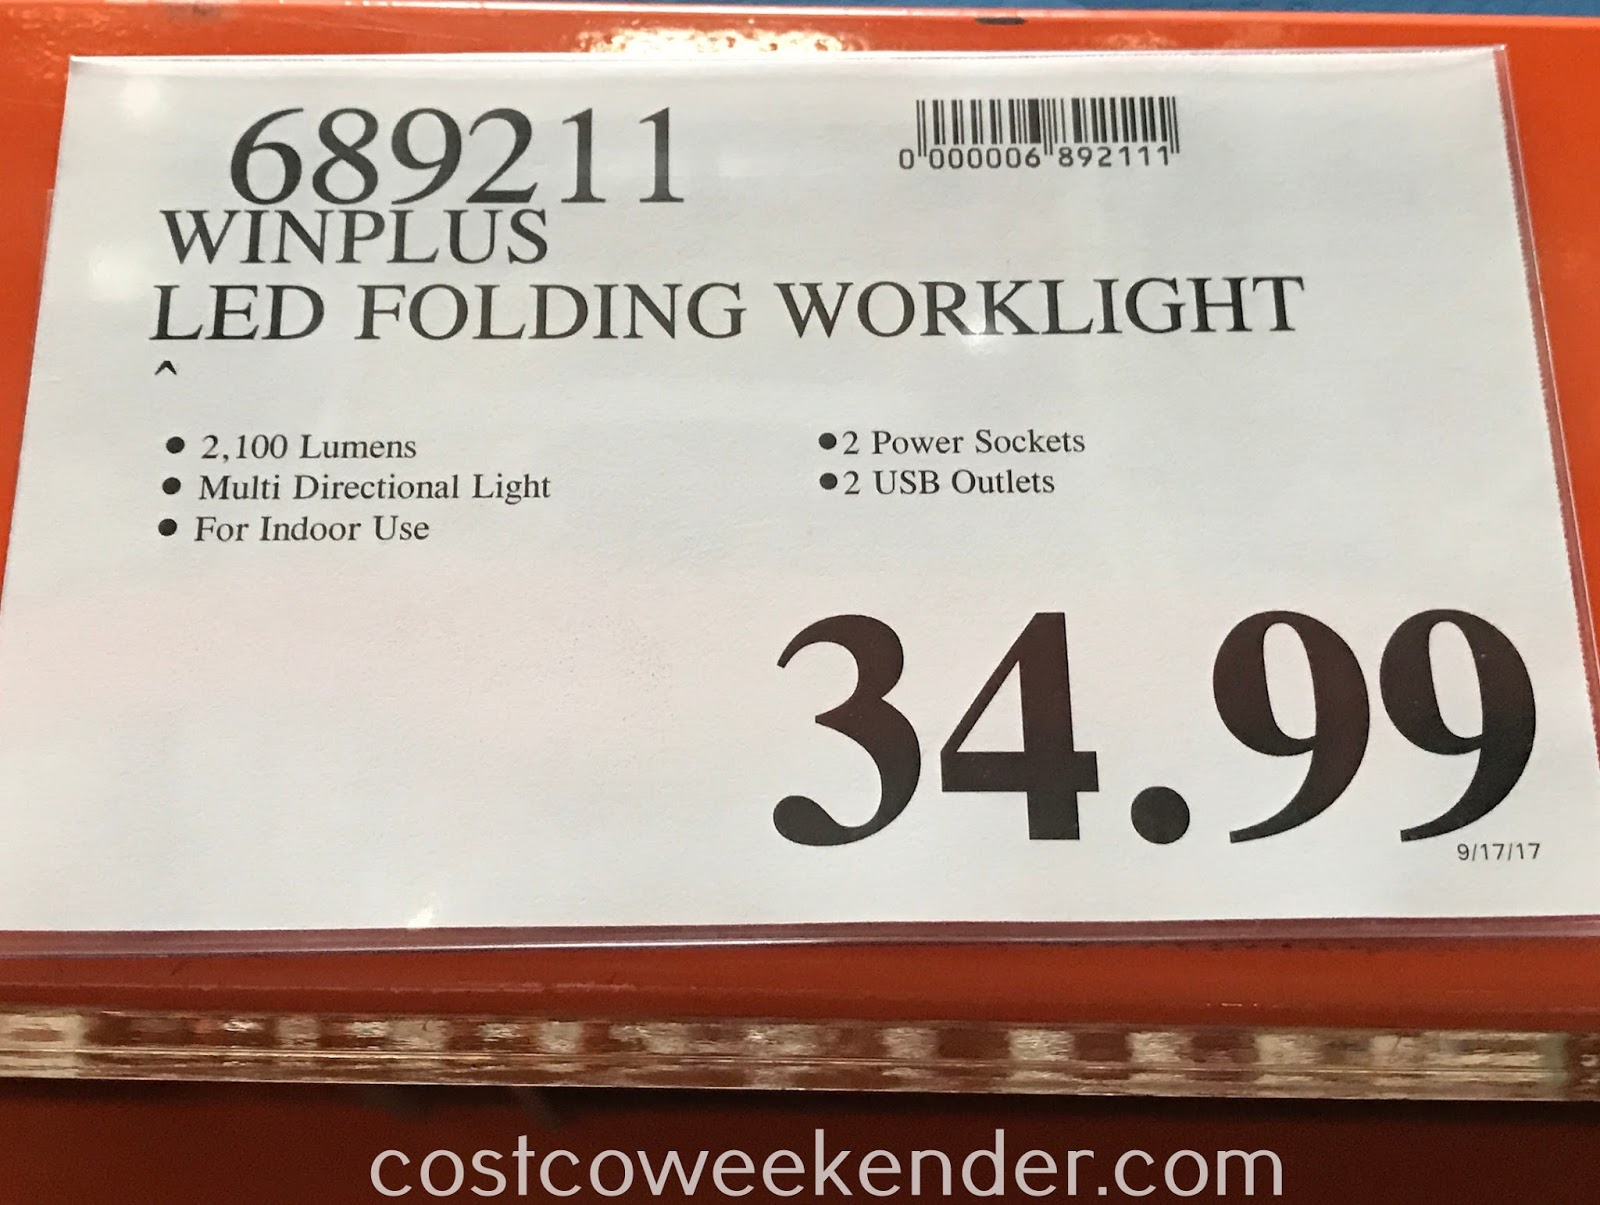 Deal for the Winplus LED Folding Worklight at Costco